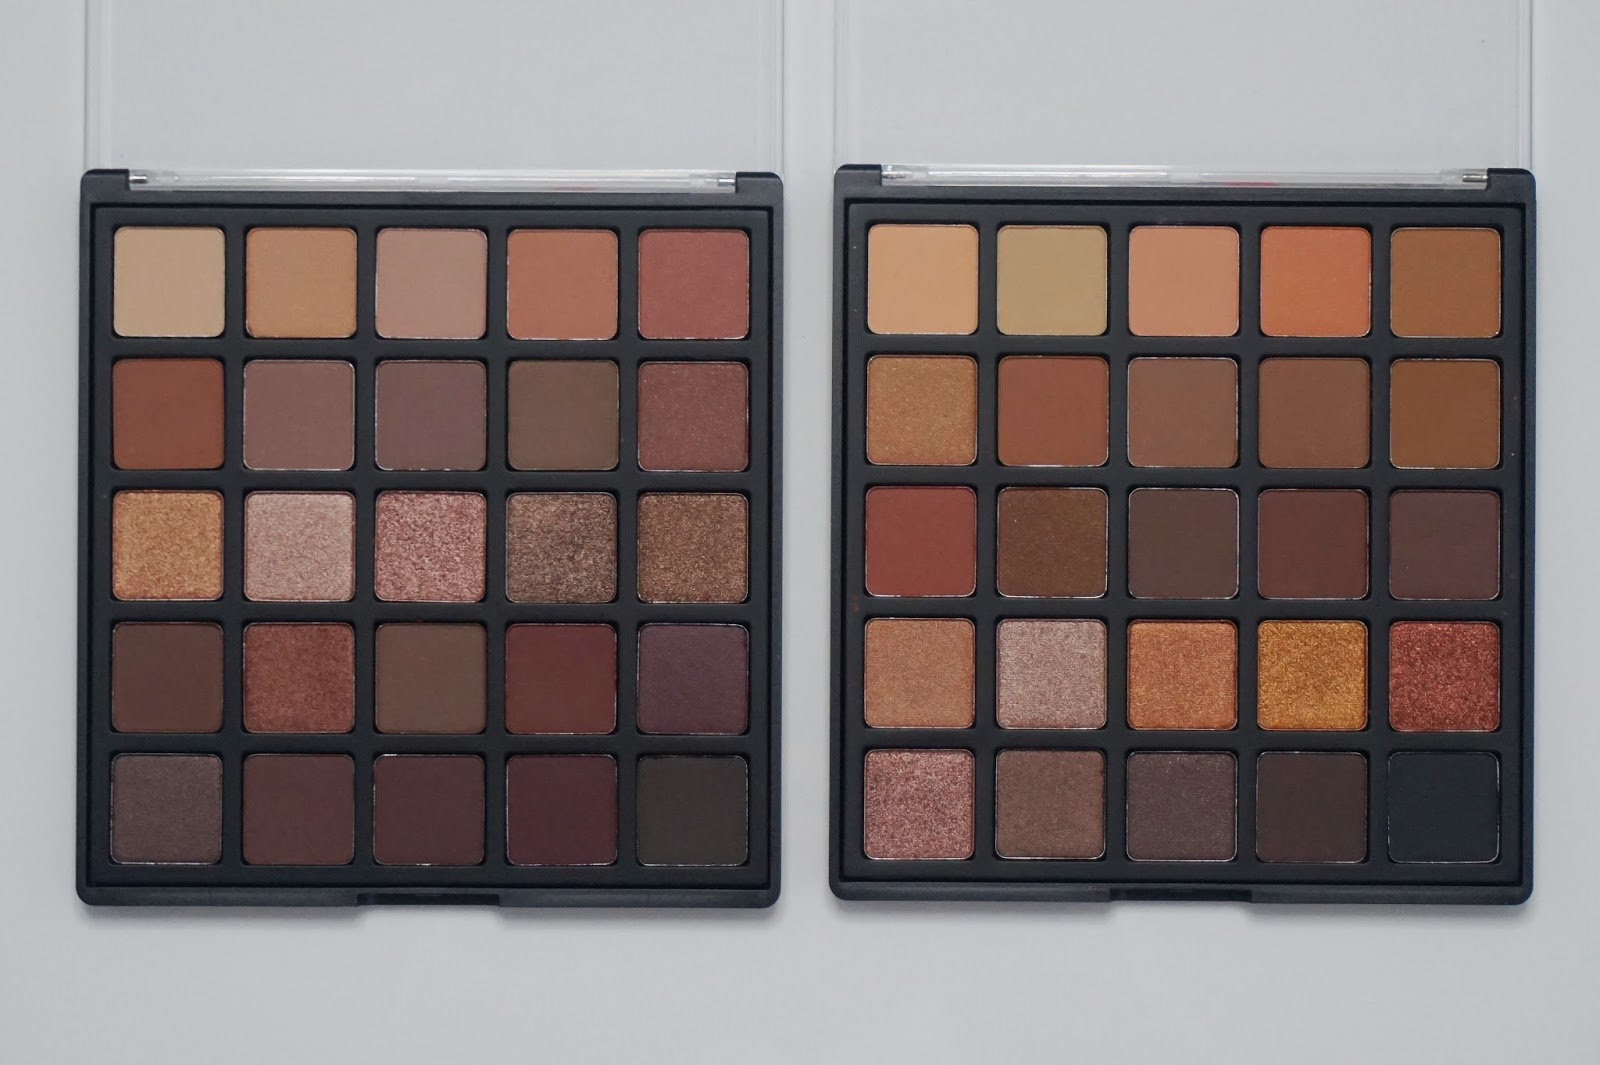 Zoom of Morphe palettes